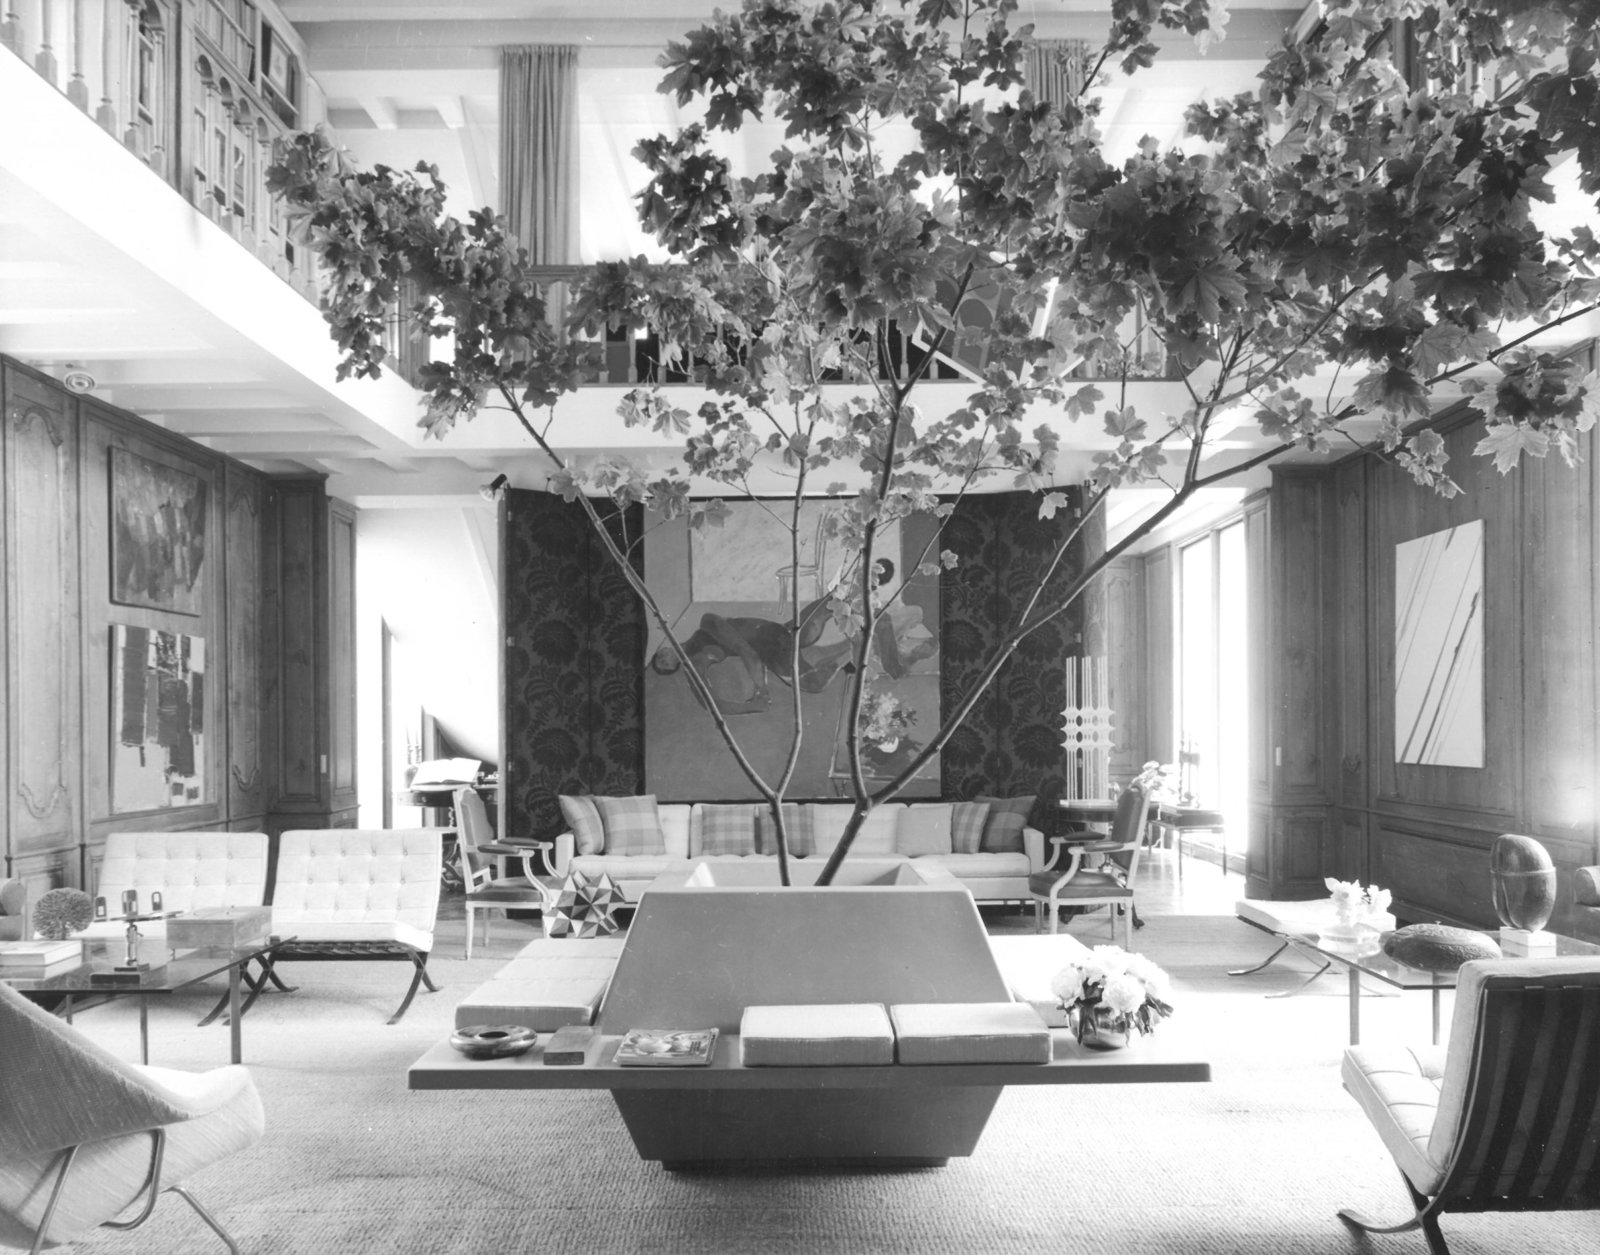 Living Room and Chair Yves Vidal's Le Moulin des Corbeaux in Saint-Maurice, France. Photograph from the Knoll Archive.  Photo 6 of 9 in Yves Vidal: Knoll International